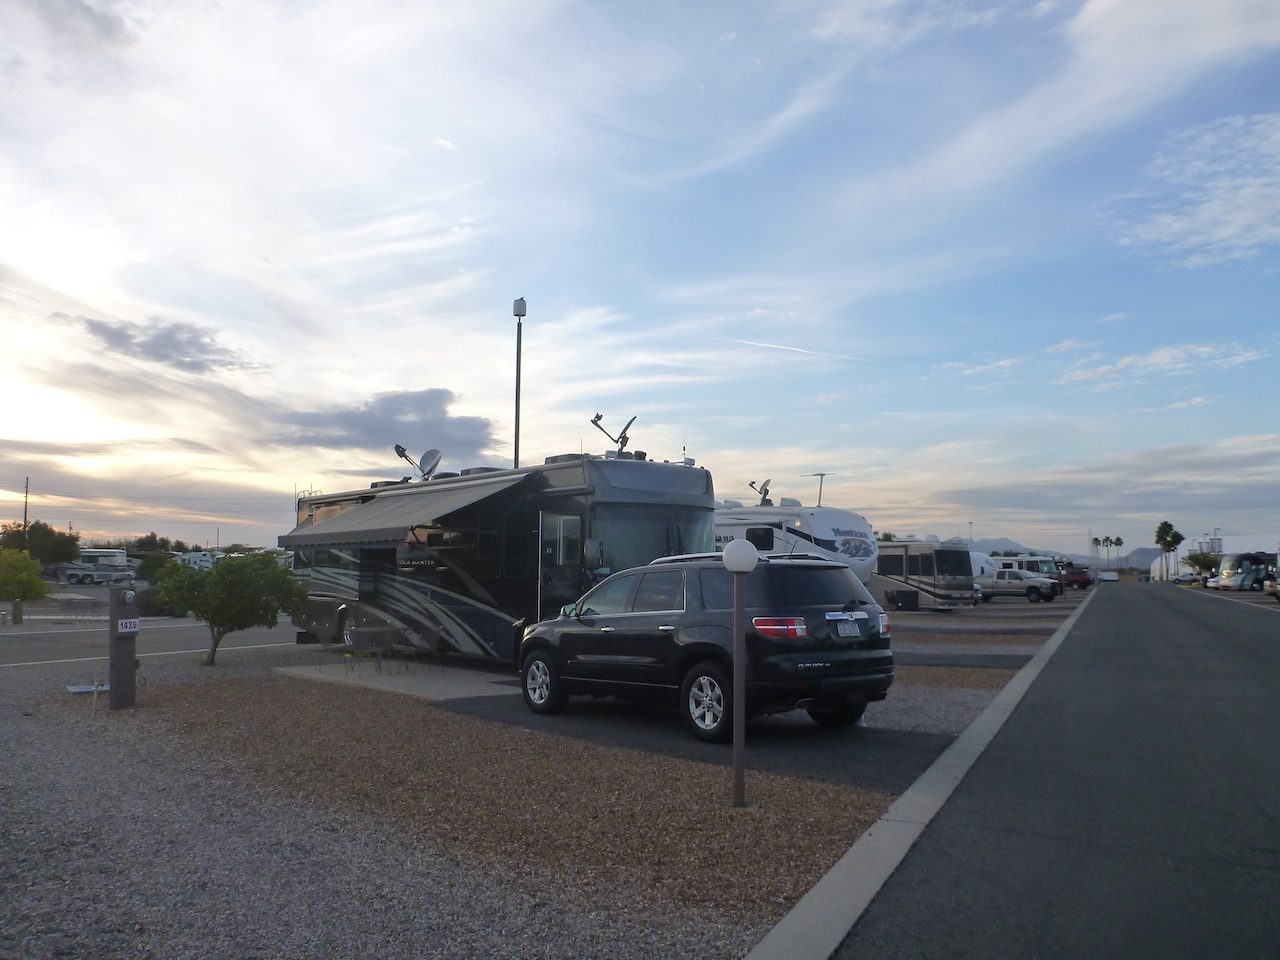 Our Site In Tucson At The Lazydays RV Campground